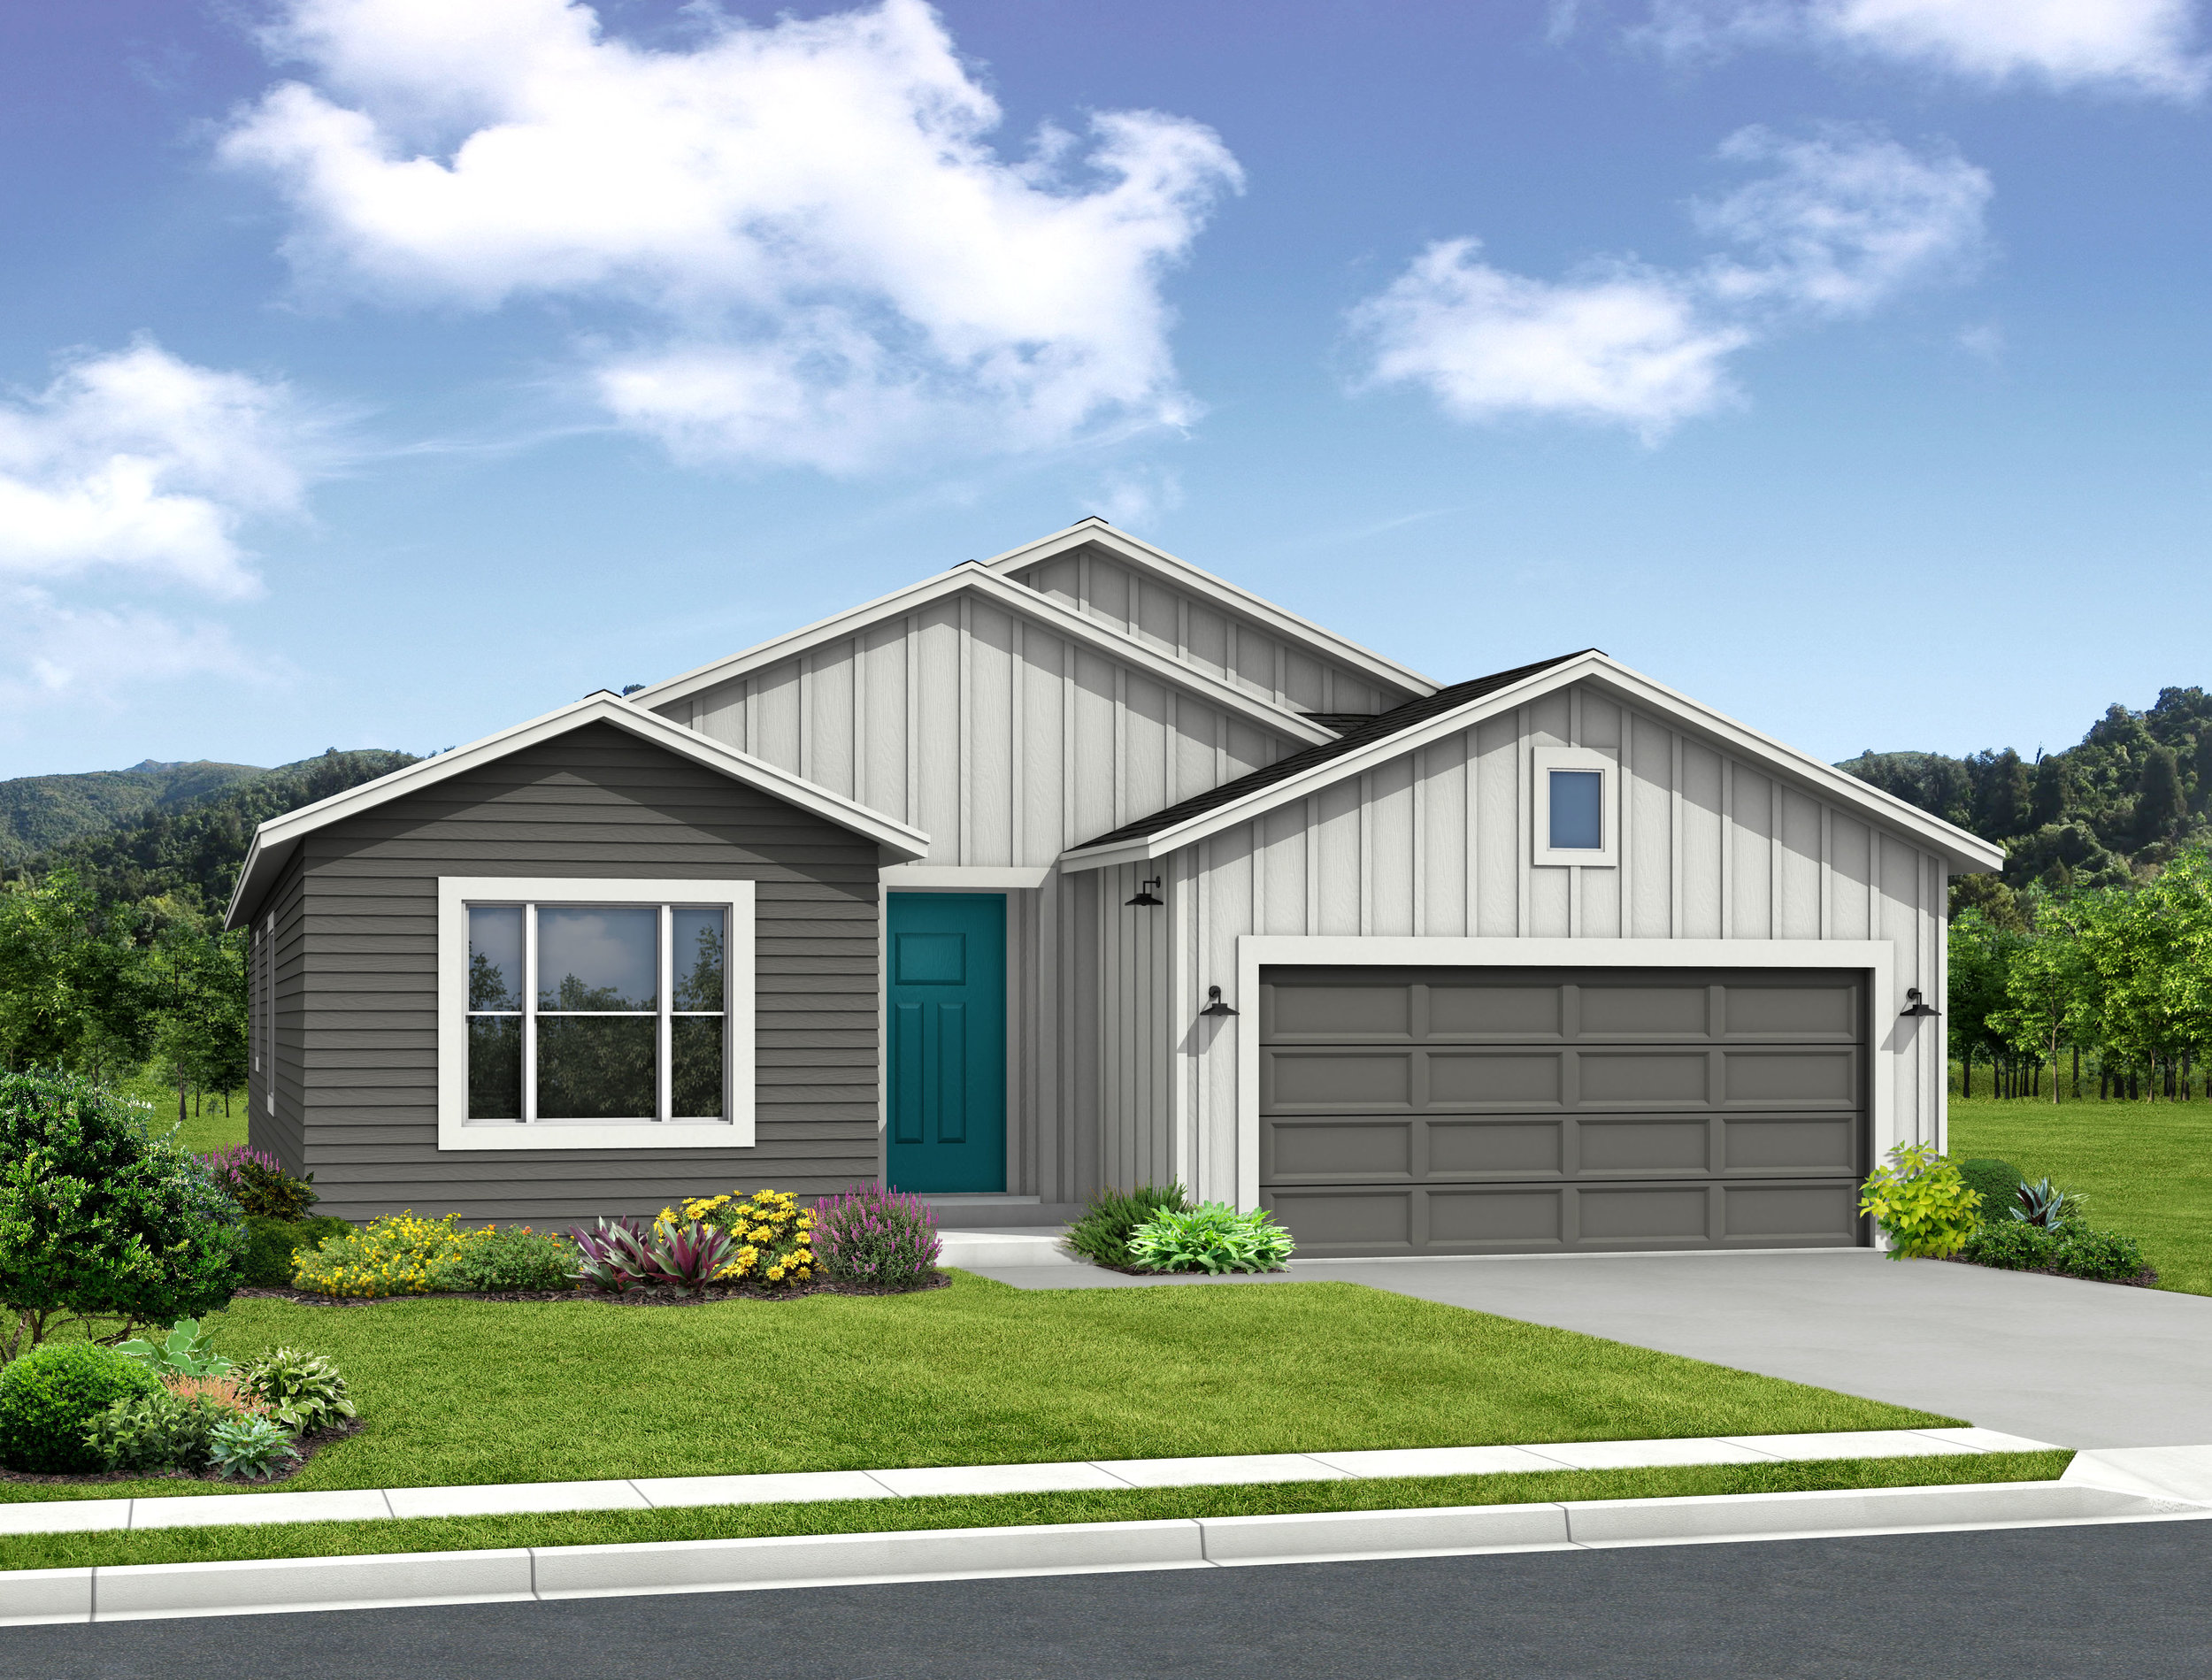 Keller Homes-Cumbre Vista-Farmhouse Series_1503.jpg